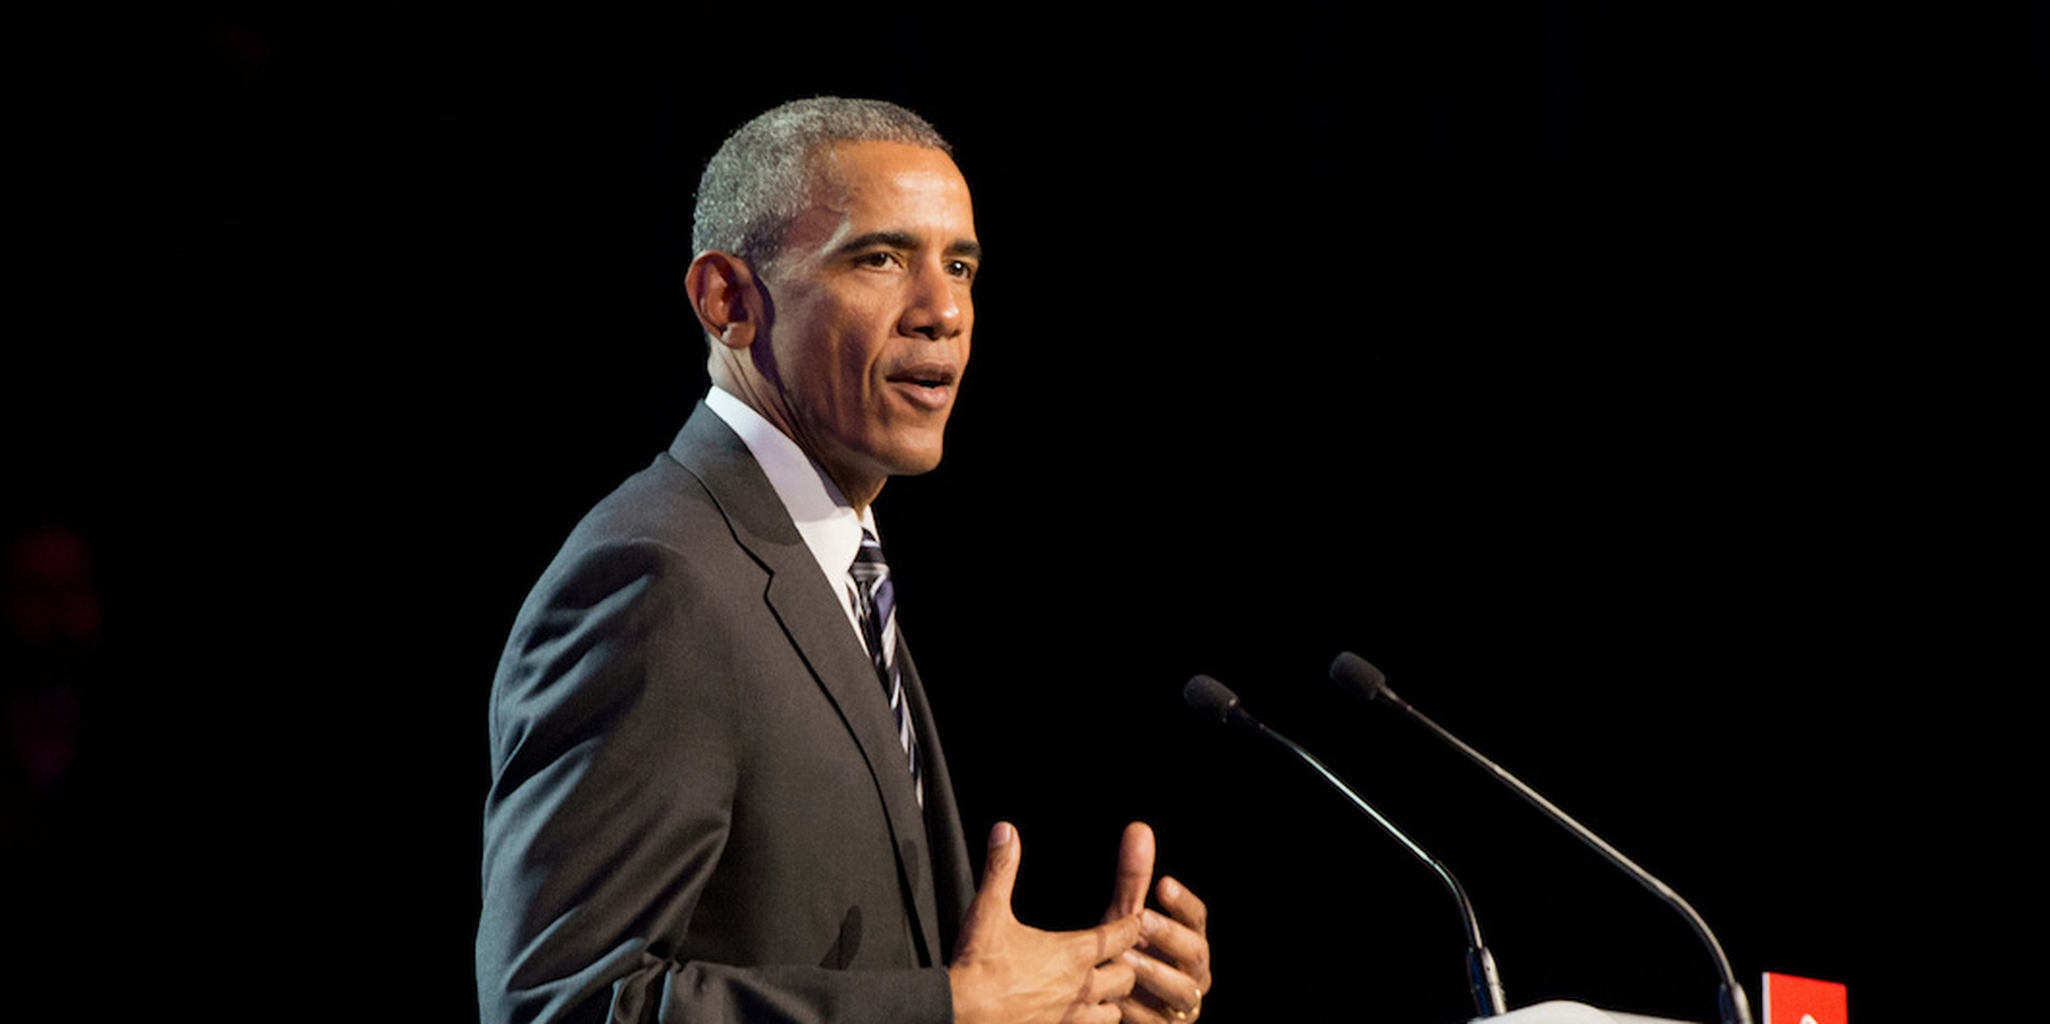 President Barack Obama speaking into a microphone.